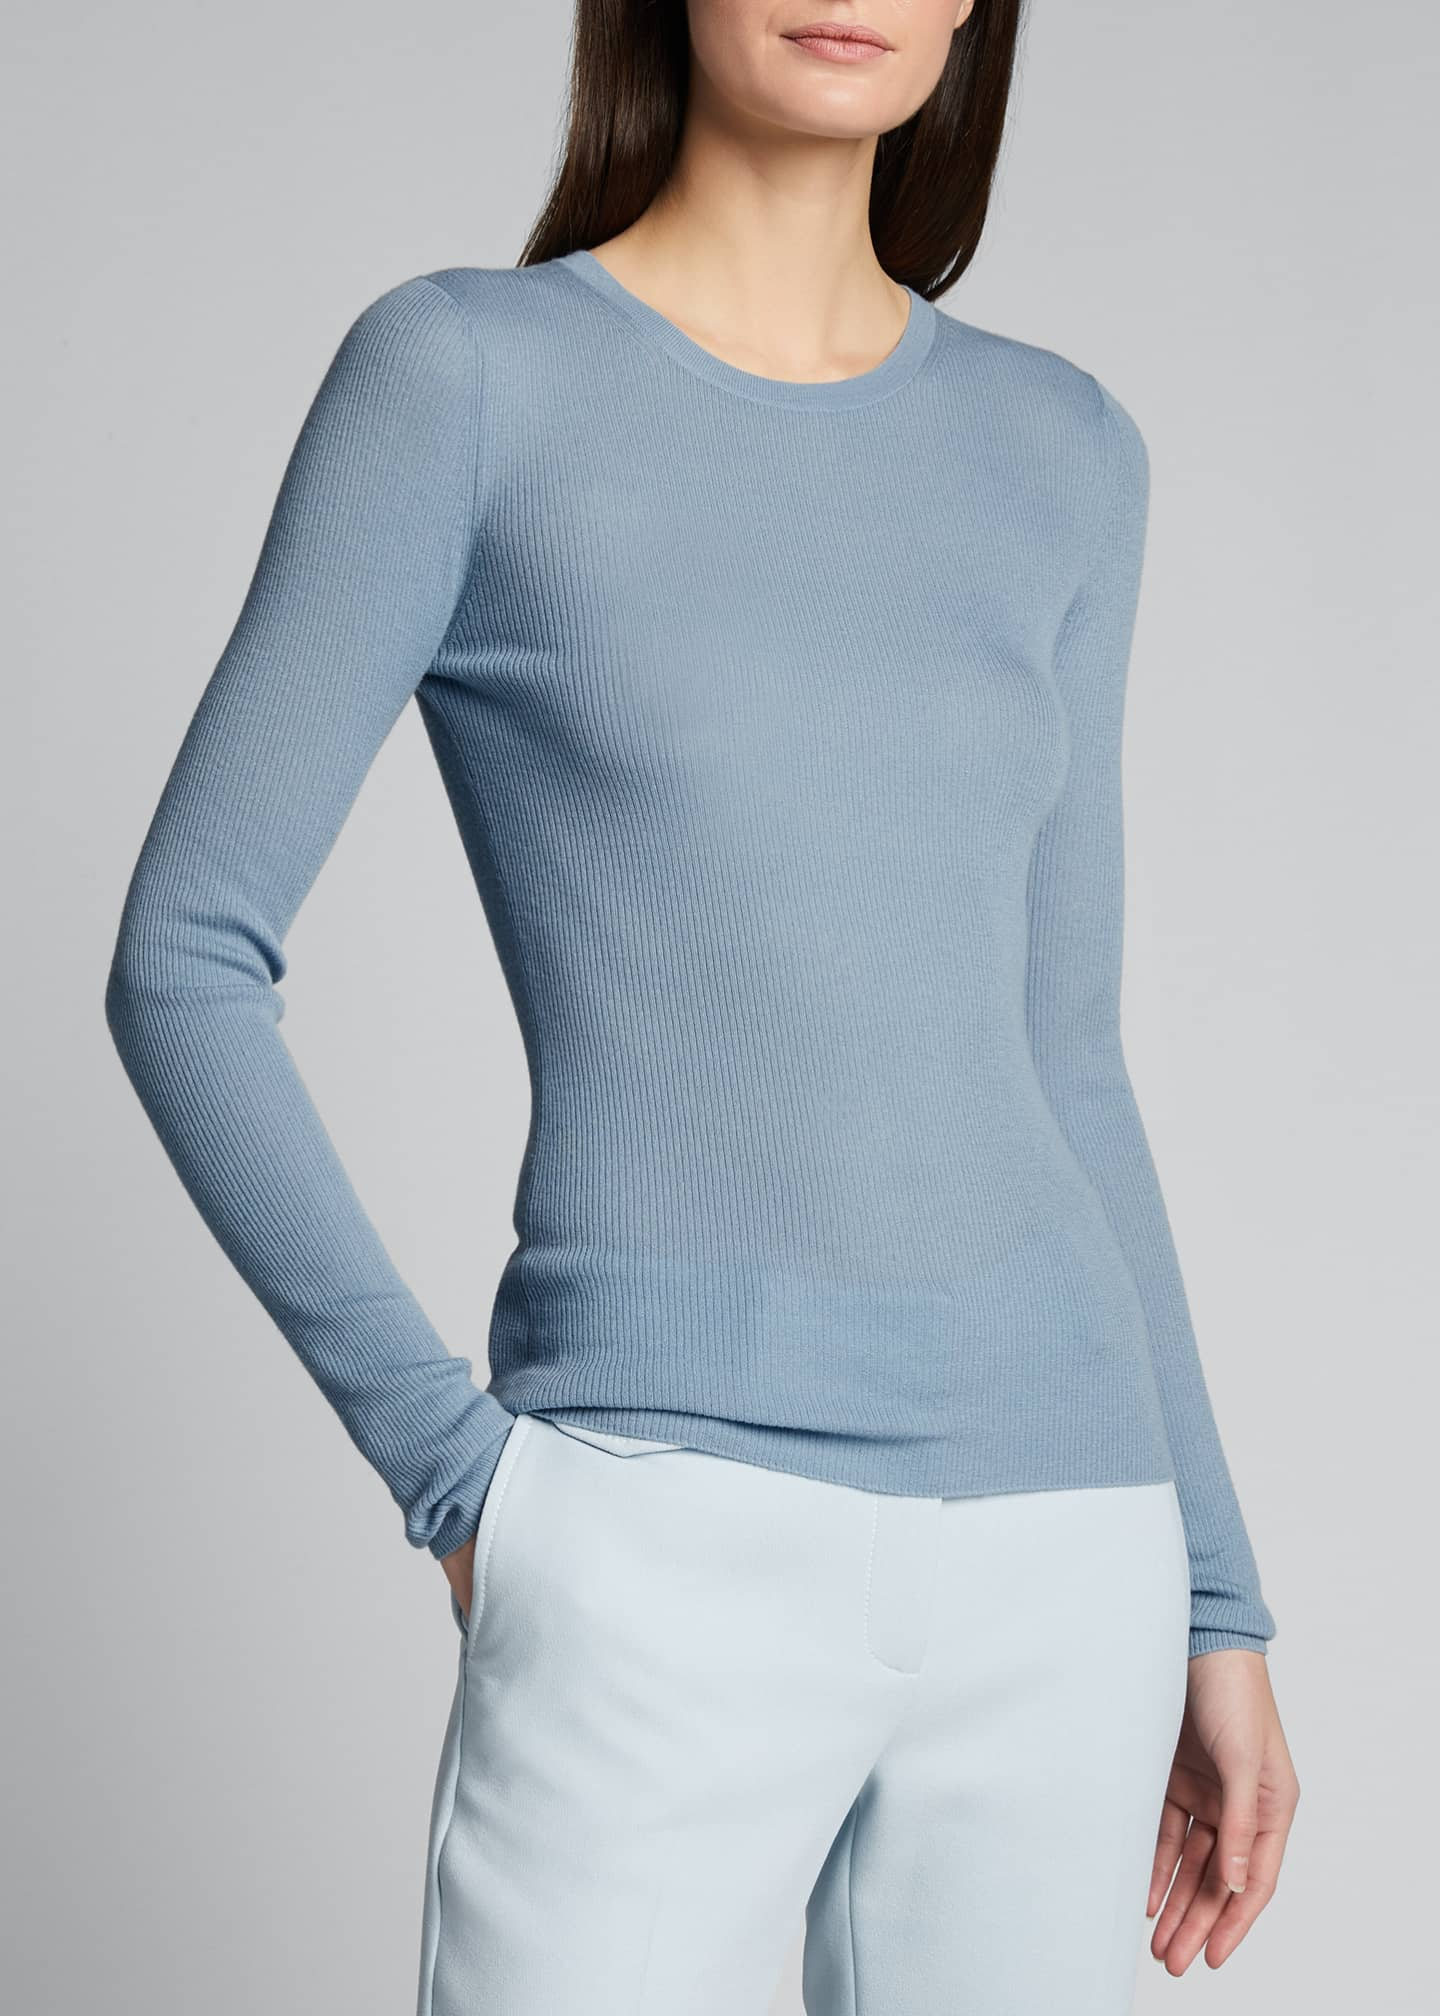 Image 3 of 5: Featherweight Cashmere Sweater